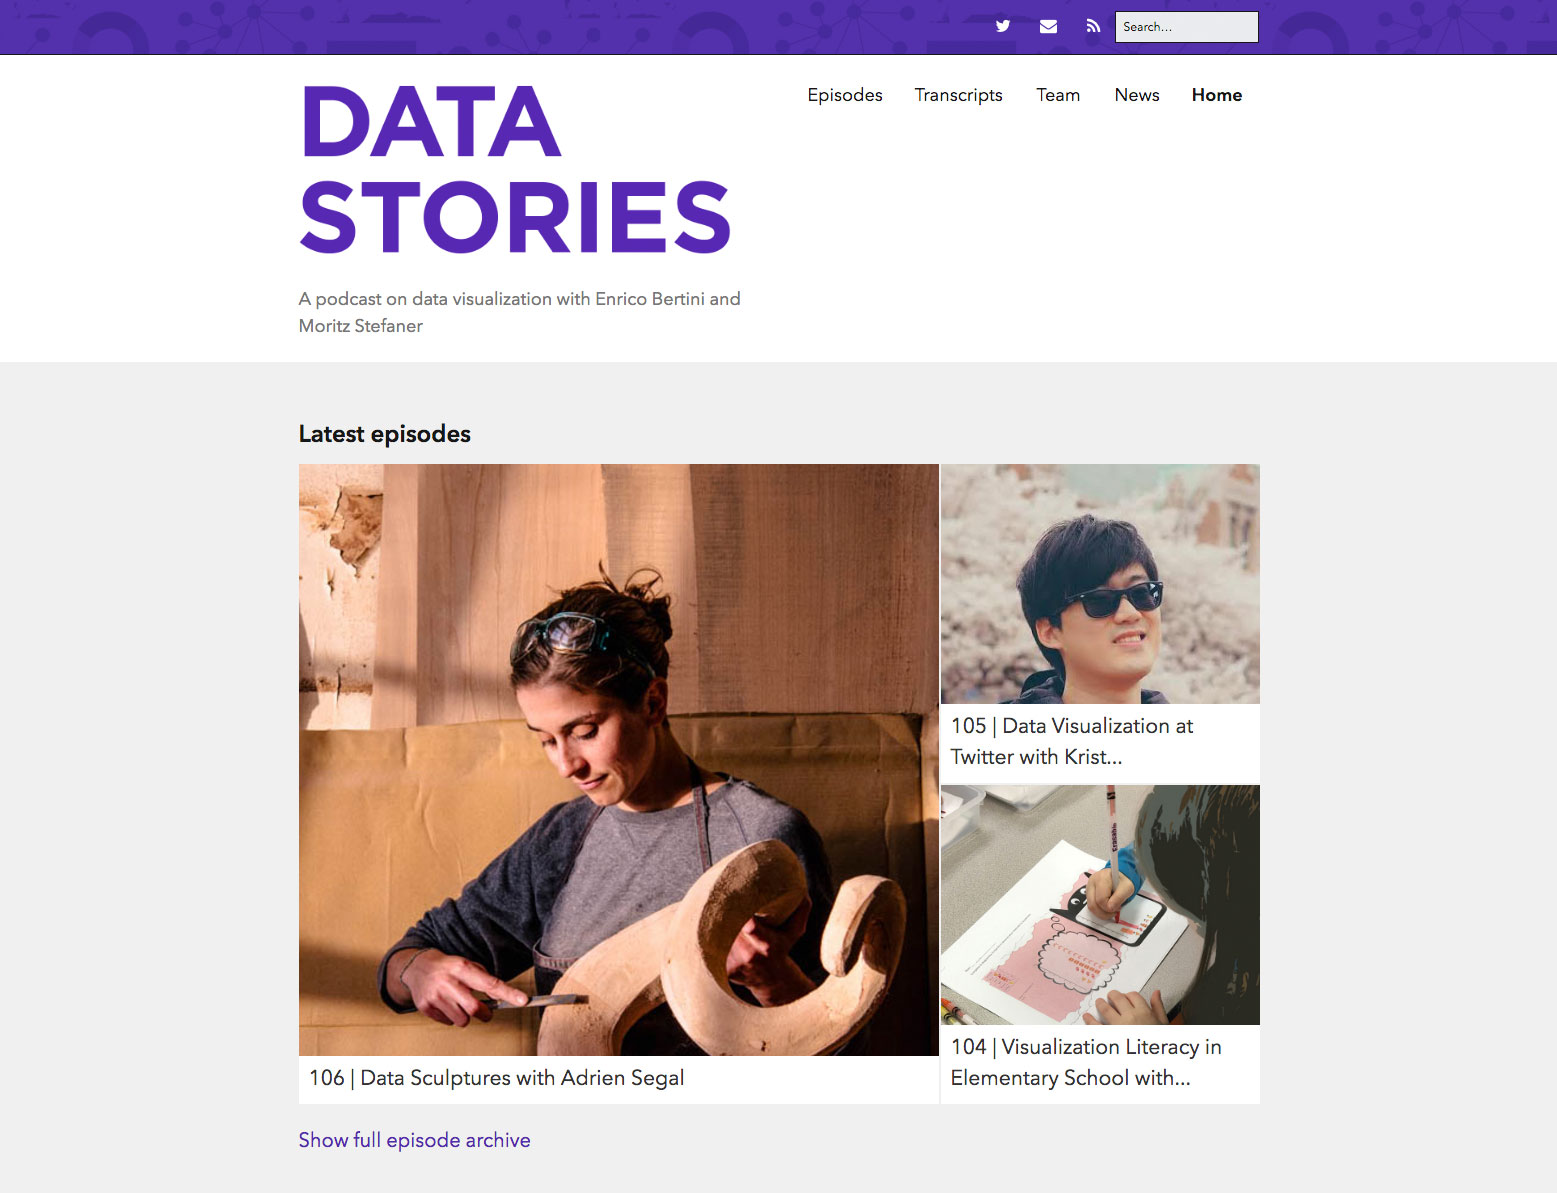 Web design podcasts: Data Stories